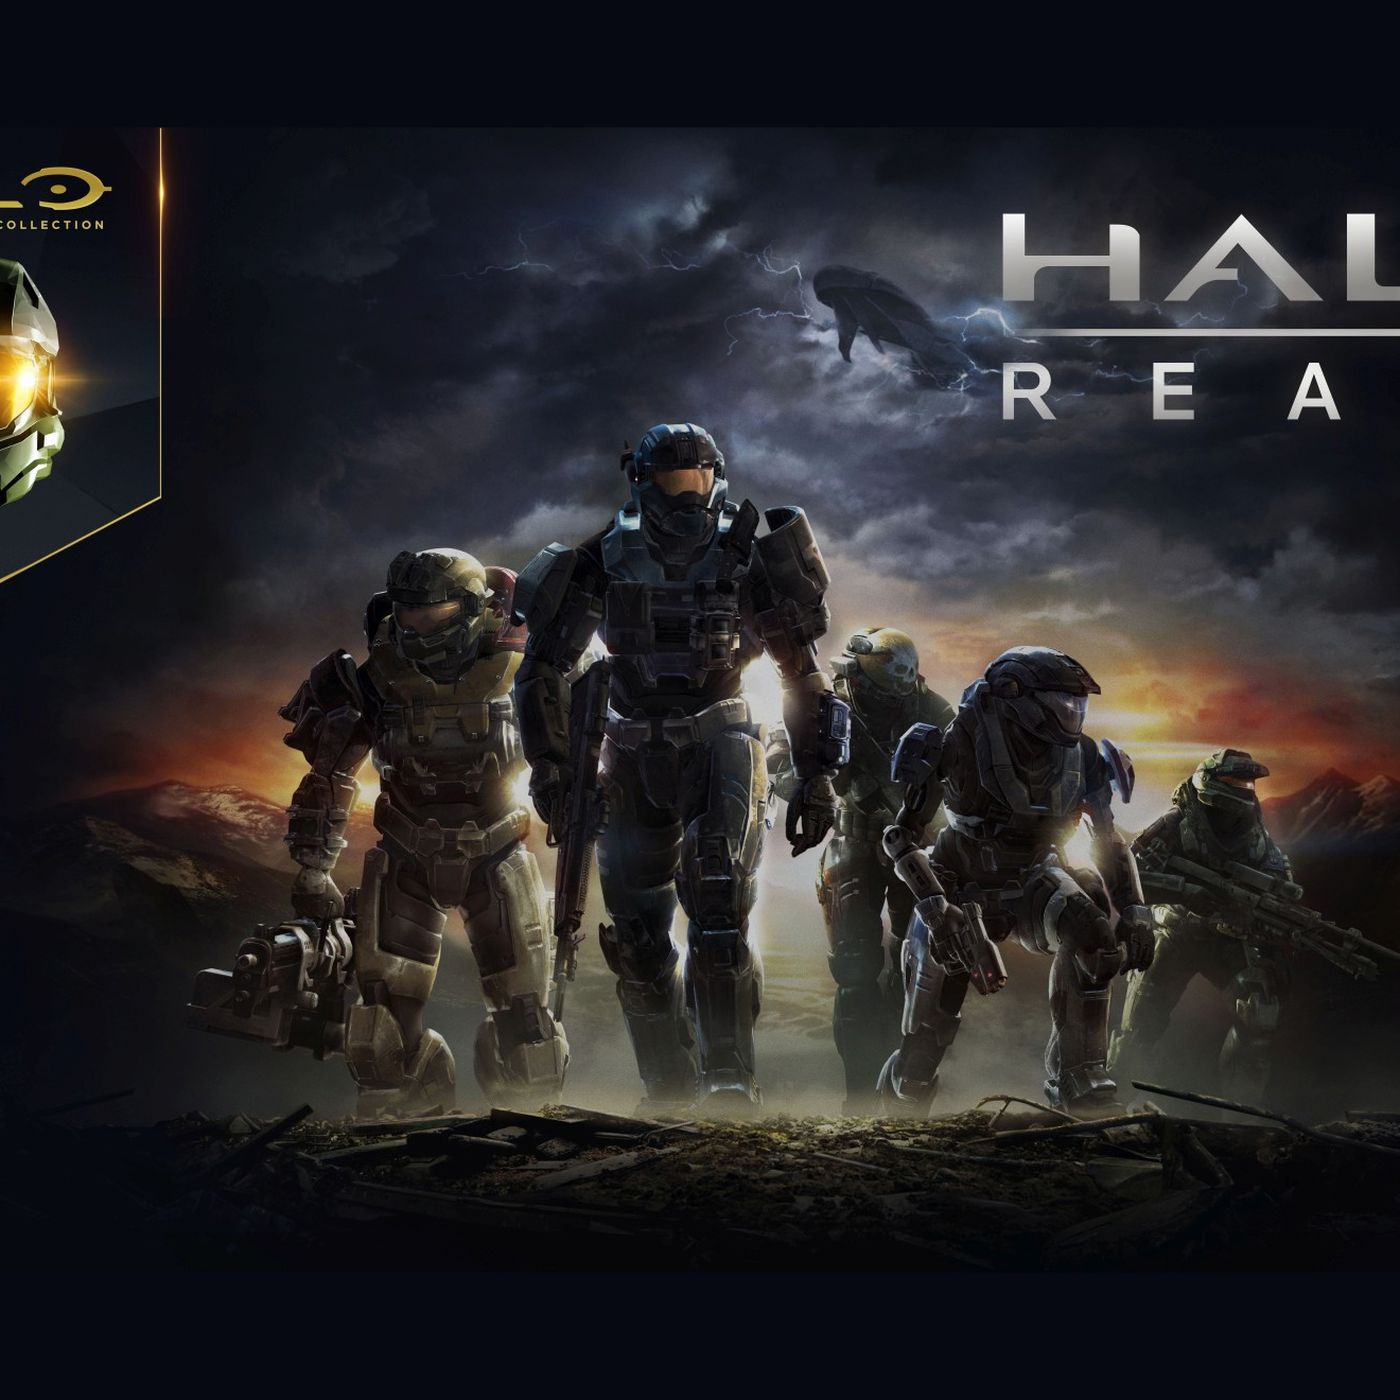 Halo Reach Becomes A Steam Most Played Game On Launch Day The Verge